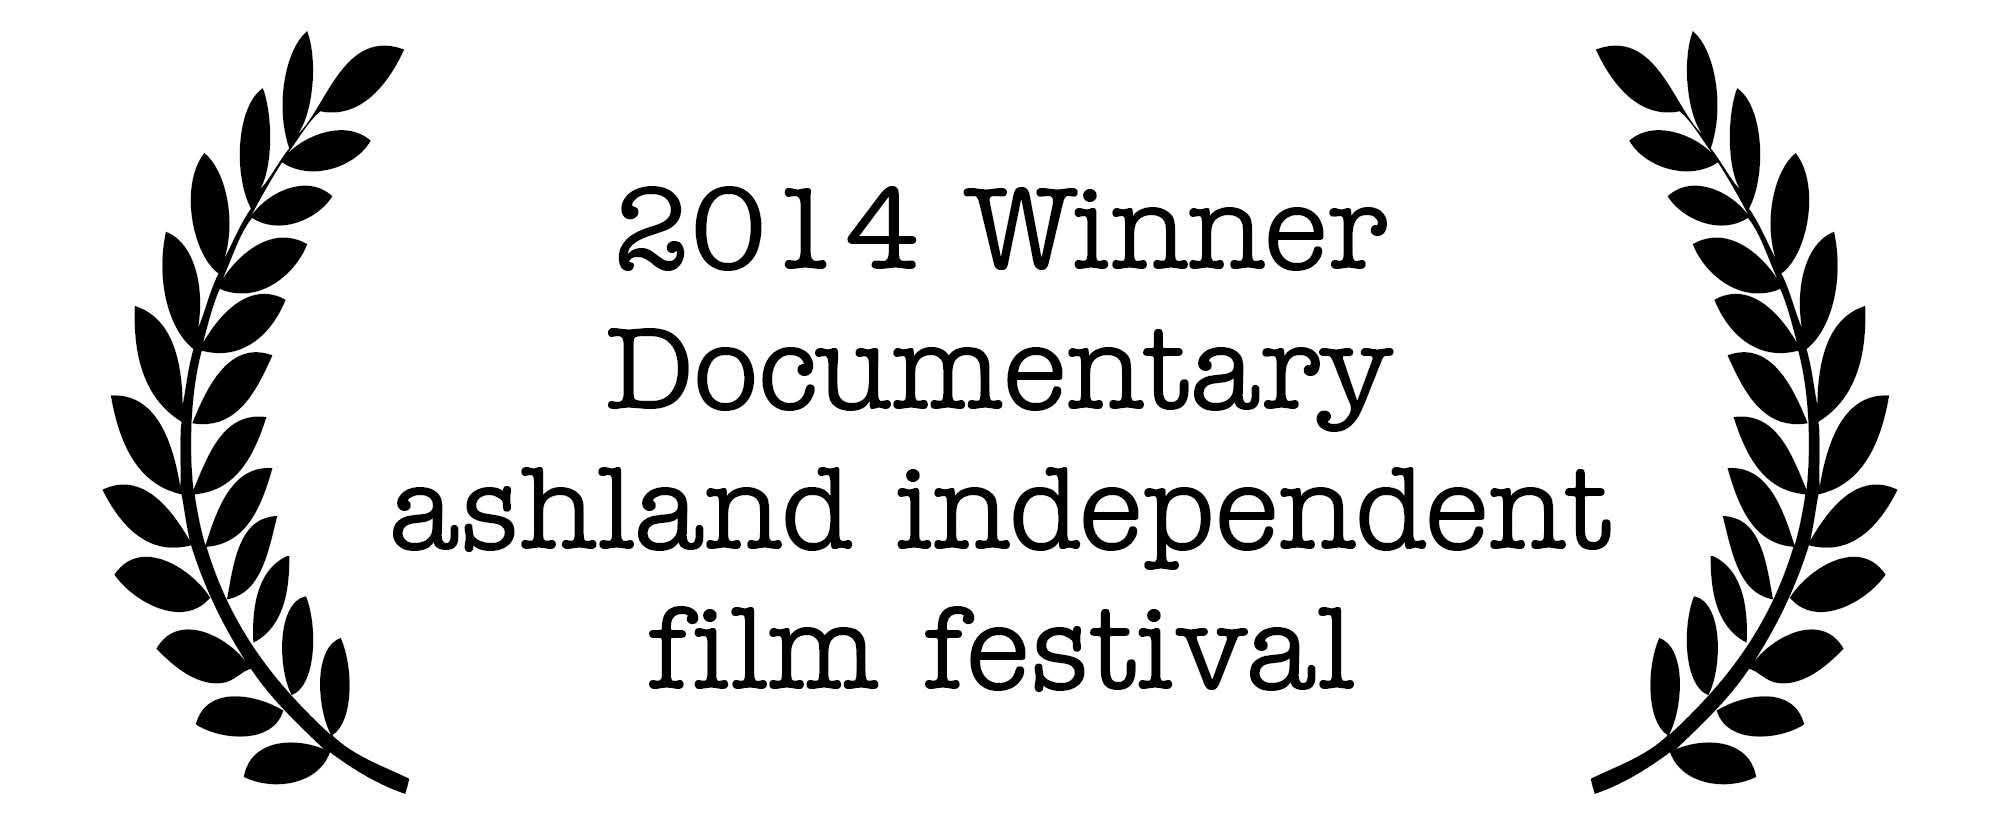 2014.Win.Docu_winner_laurels_Ashland.jpg